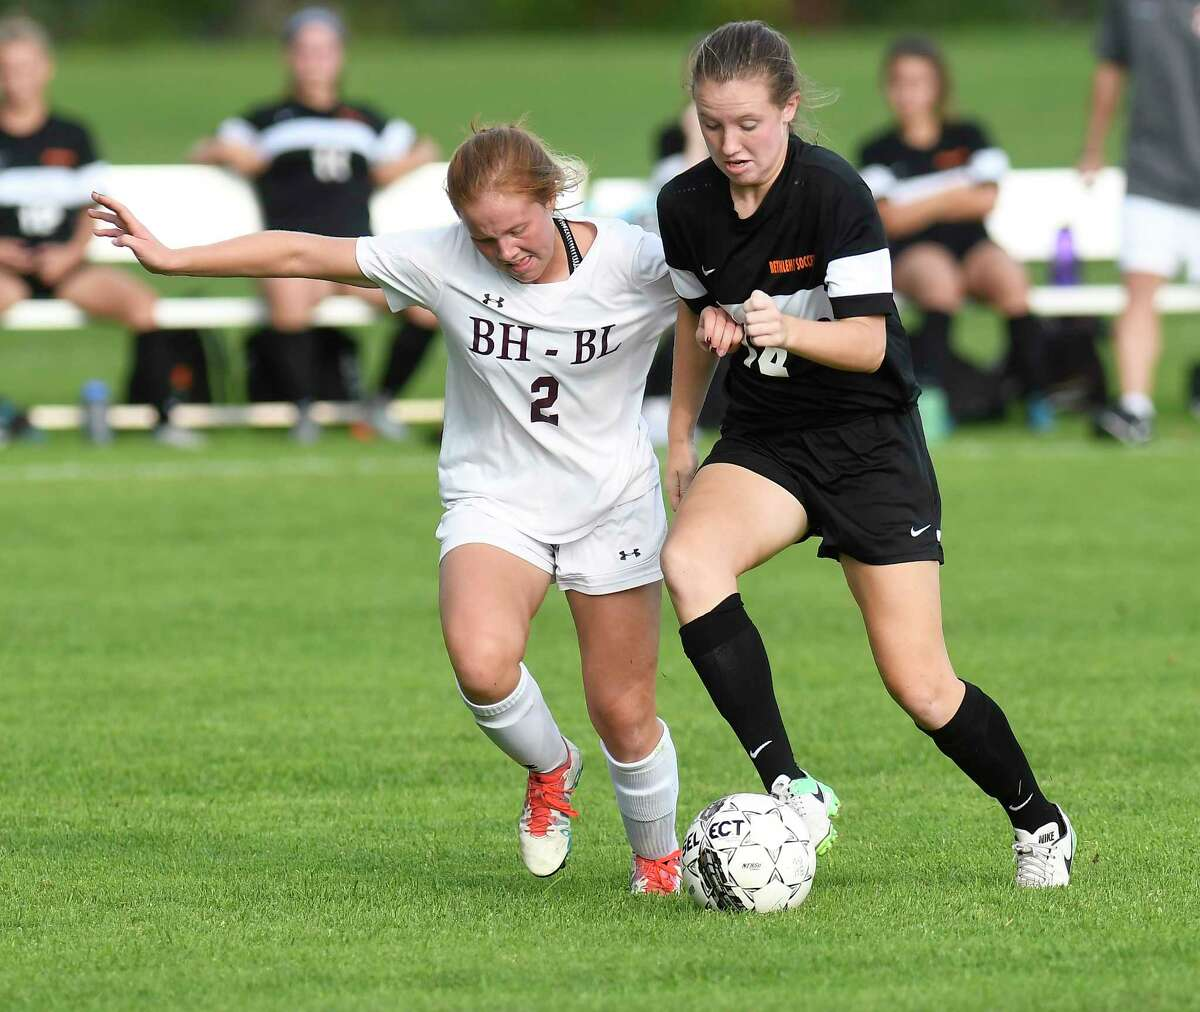 Burnt Hills-Ballston Lake's Grace Holzman (2) and Bethlehem's Grace Hotaling (14) chase the ball between during the first half of a girl's high school soccer game on Tuesday, Sept. 19, 2017, in Burnt Hills, N.Y. (Hans Pennink / Special to the Times Union) ORG XMIT: HP106